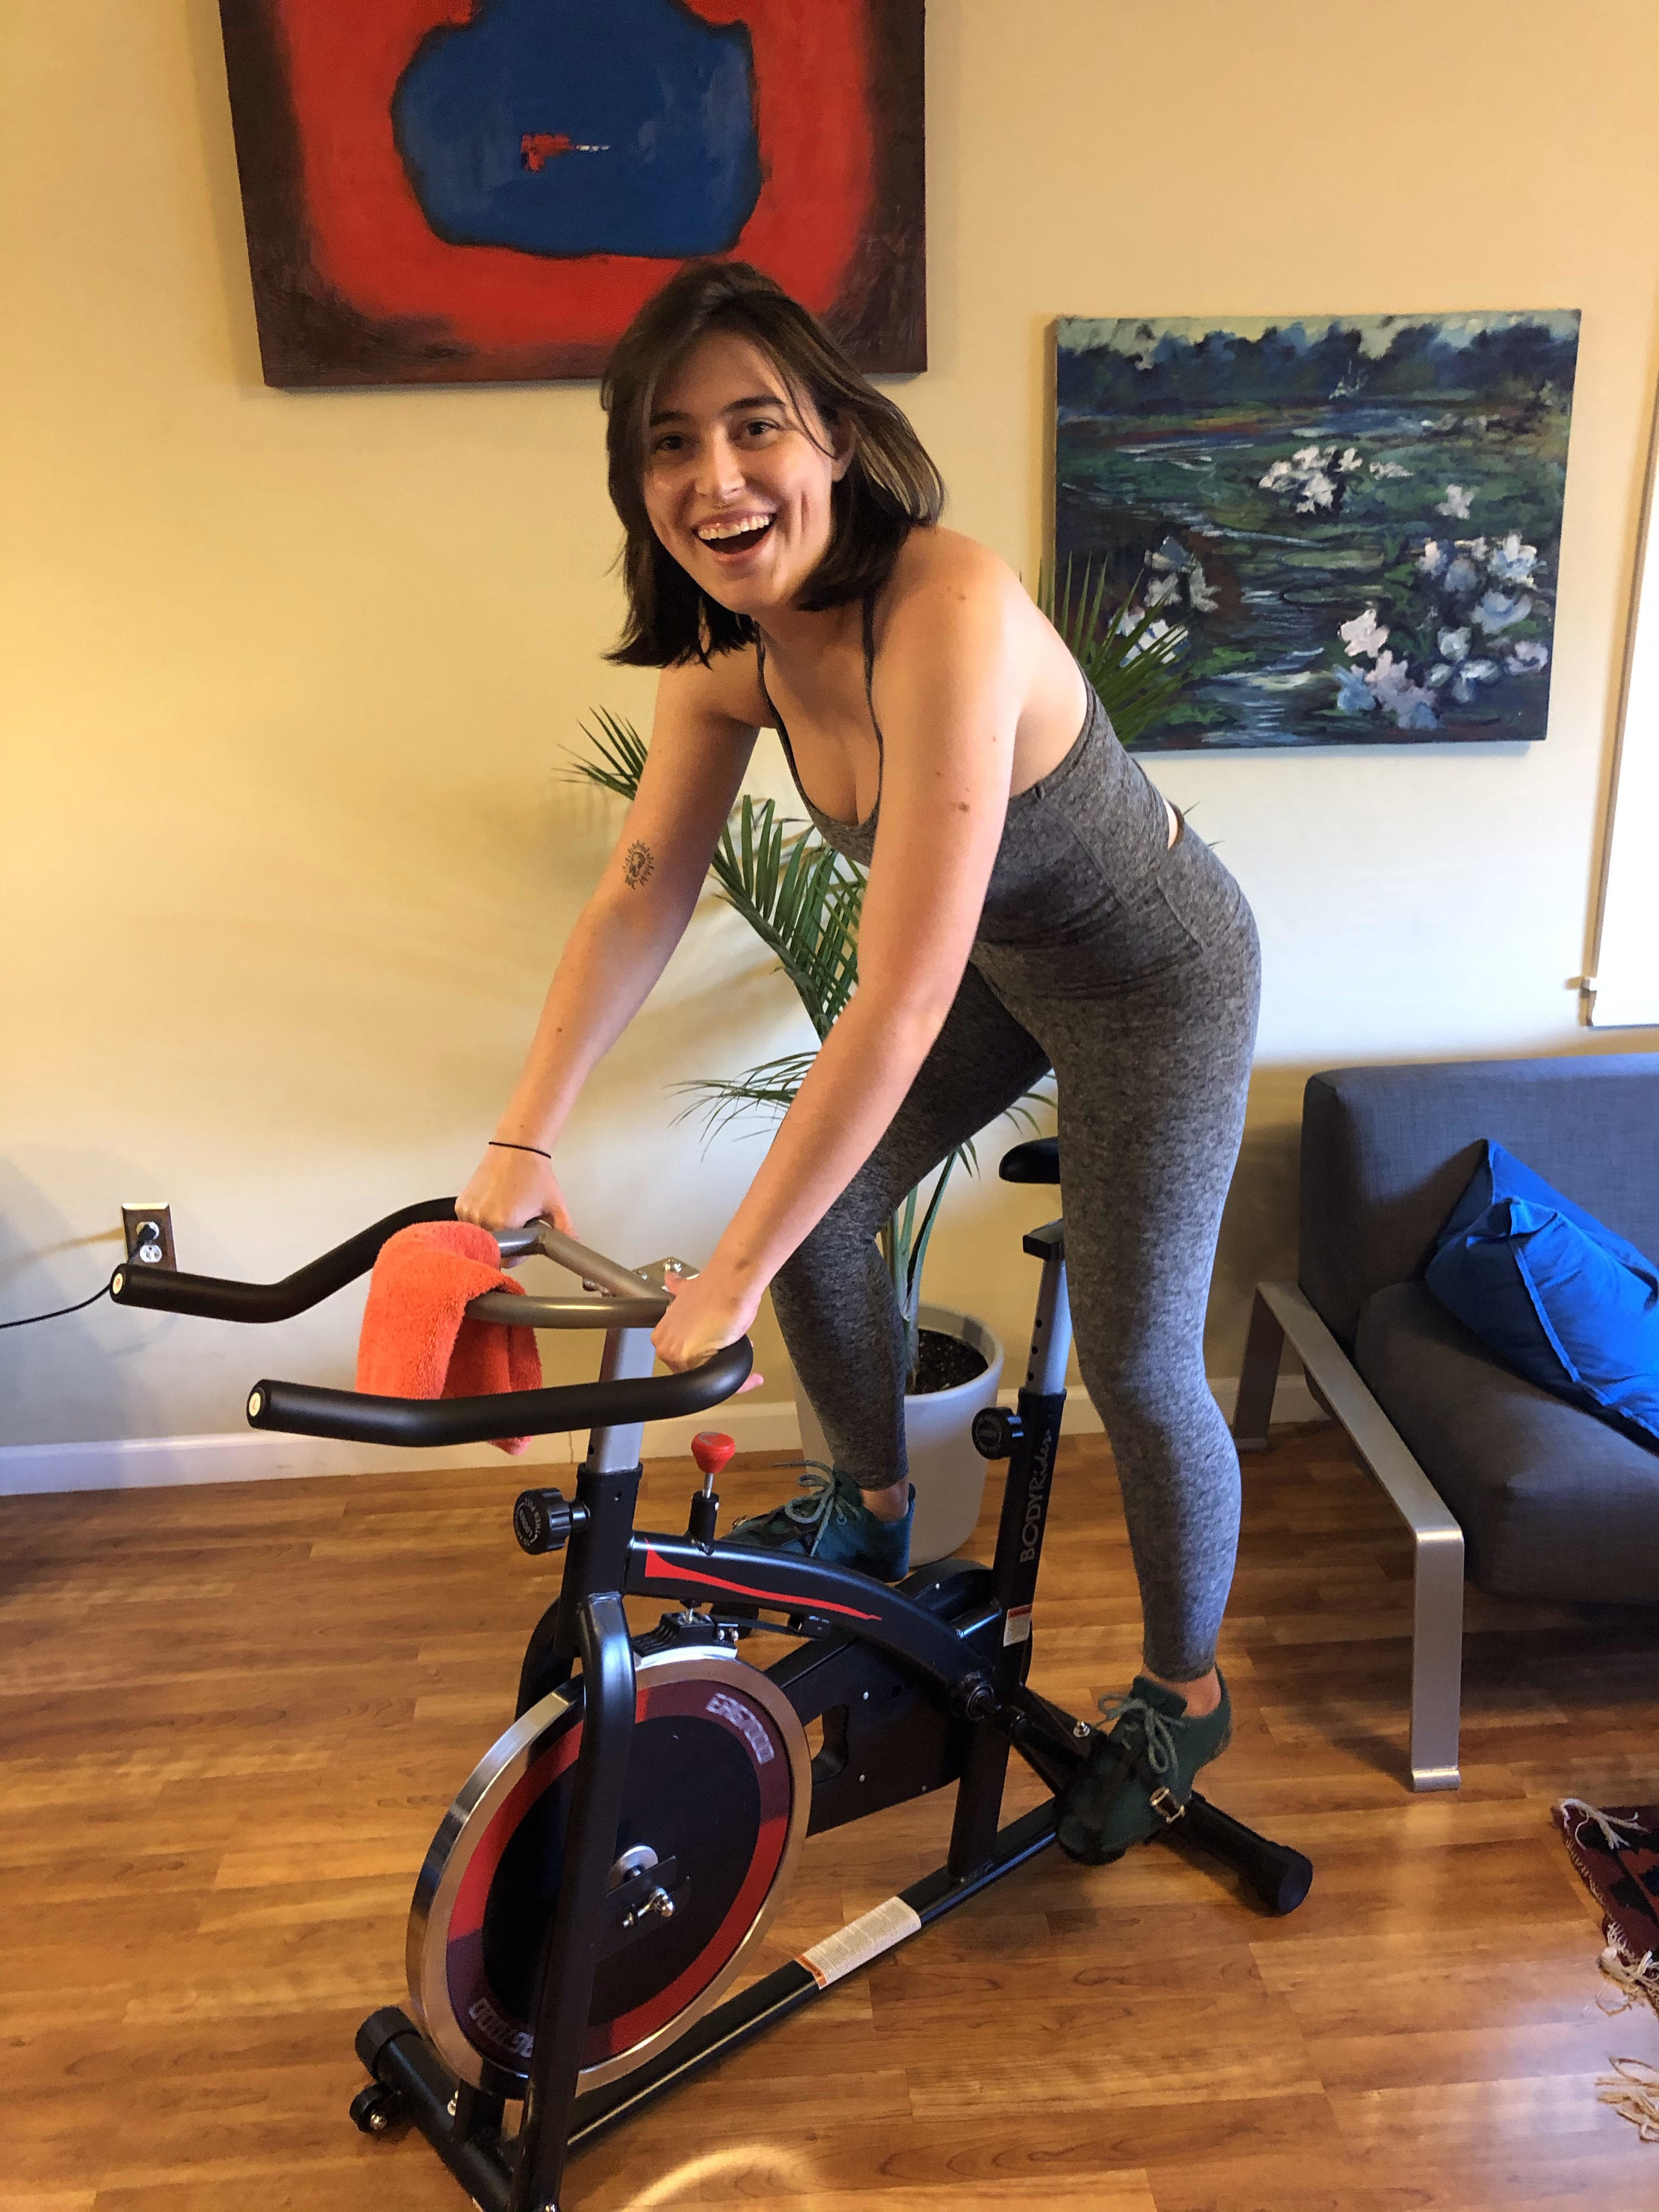 the writer on a black and red stationary bike